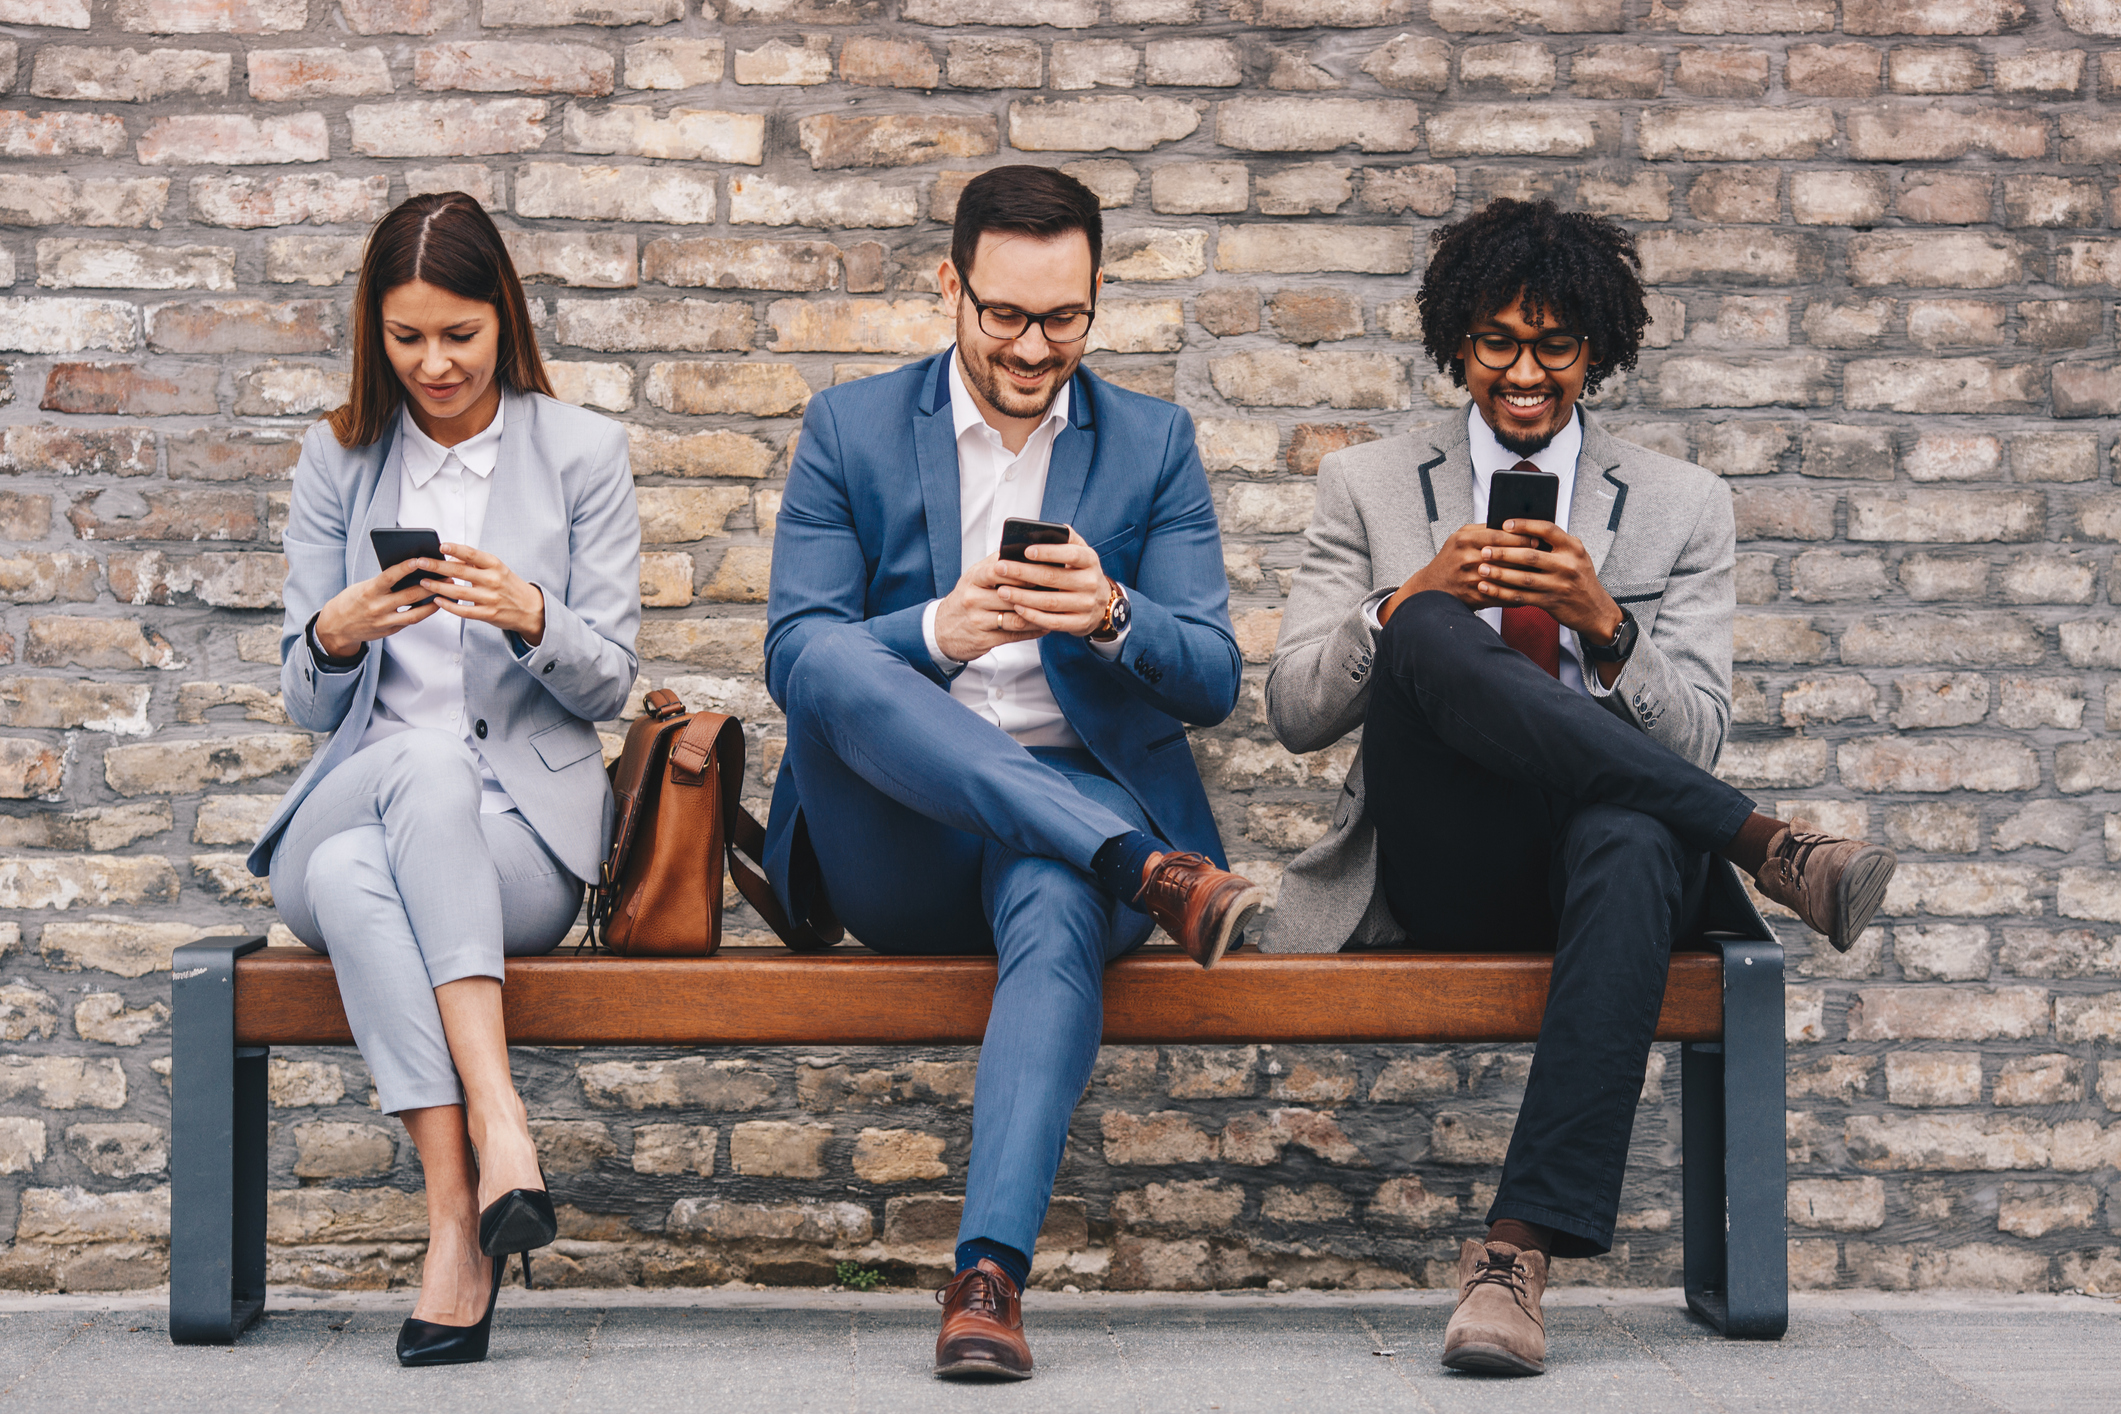 stock photo of two men and one woman in business attire, looking at their respective smart phones